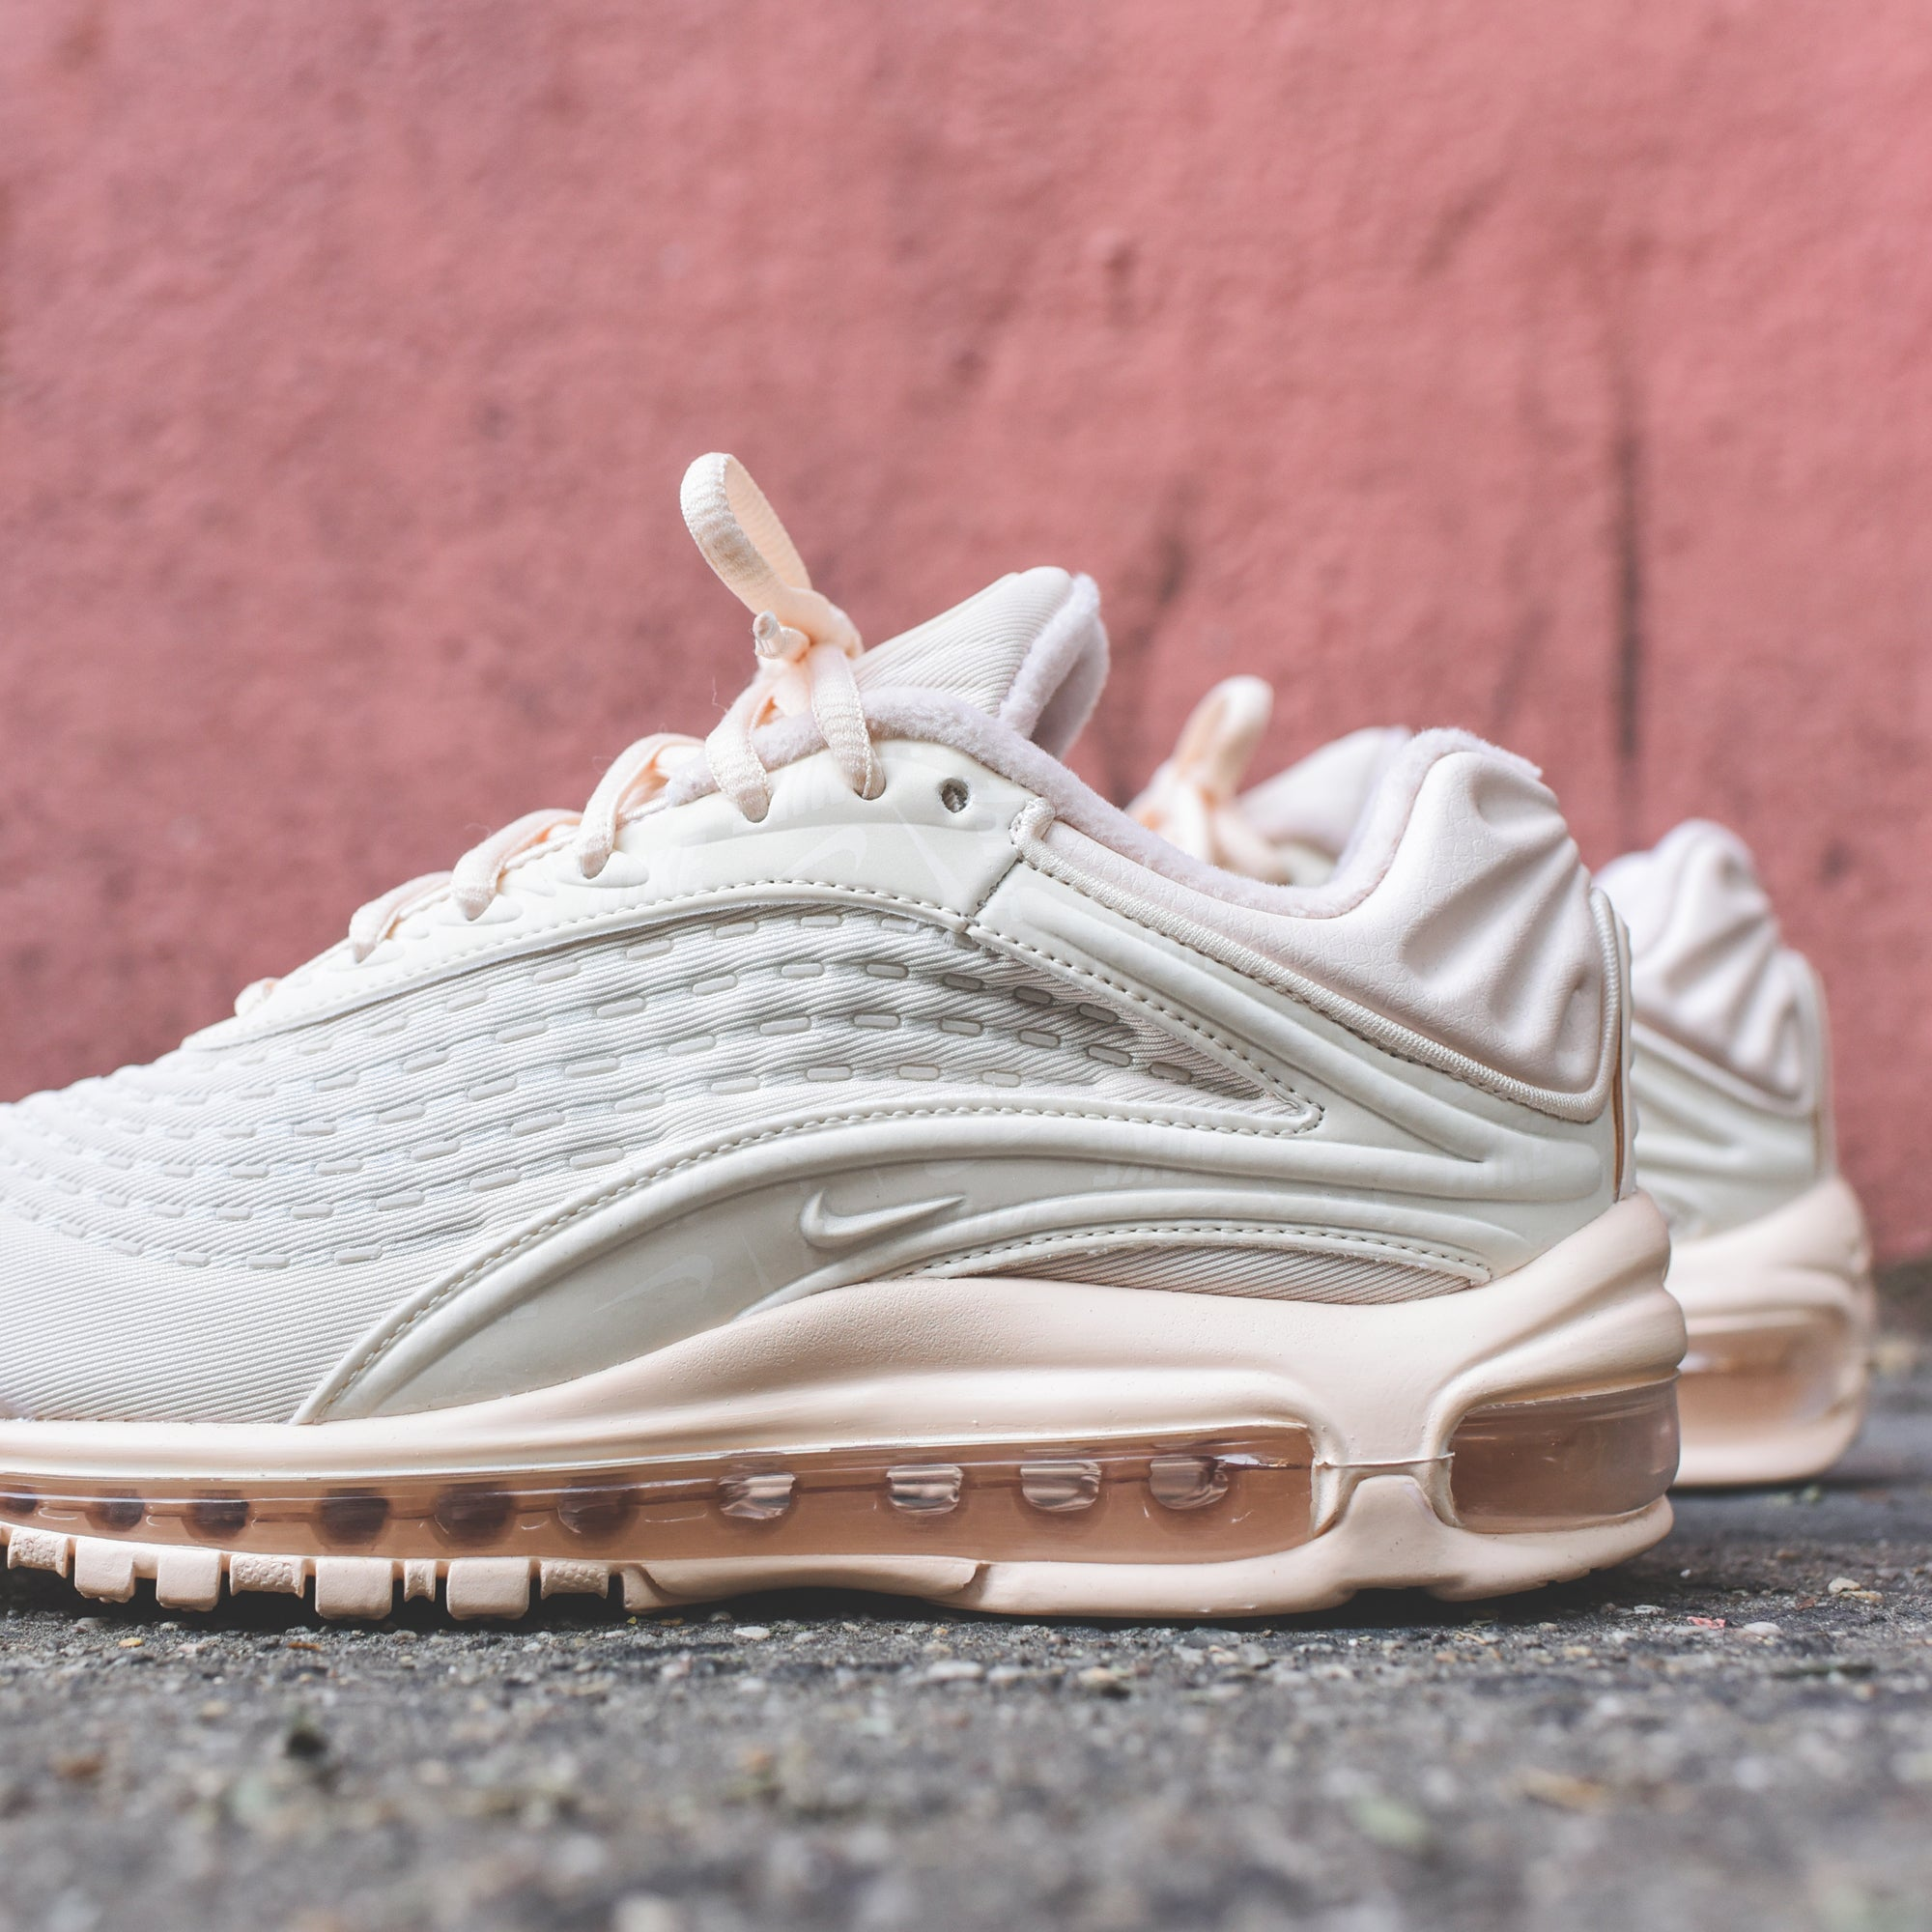 Nike WMNS Air Max Deluxe SE Guava Ice – Kith